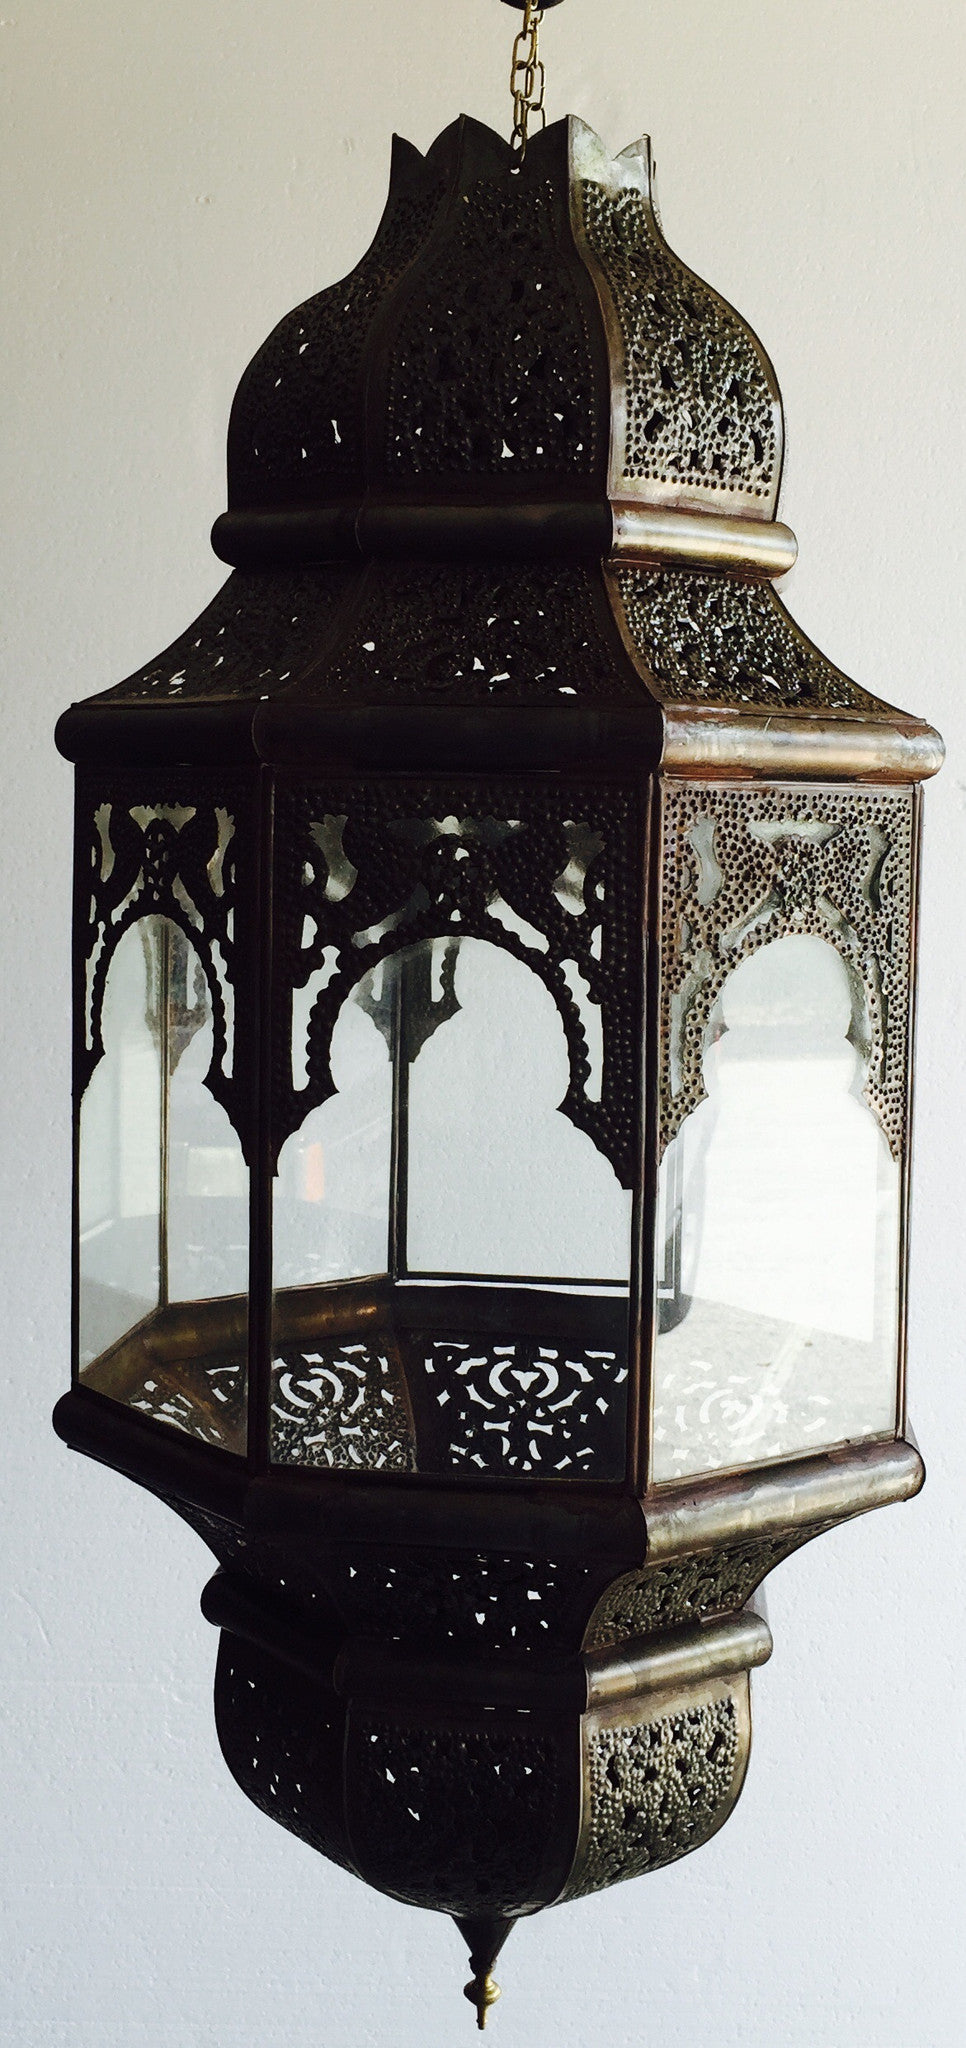 Moorish metal large lantern - handmade Moorish Lighting - Moorishlighting